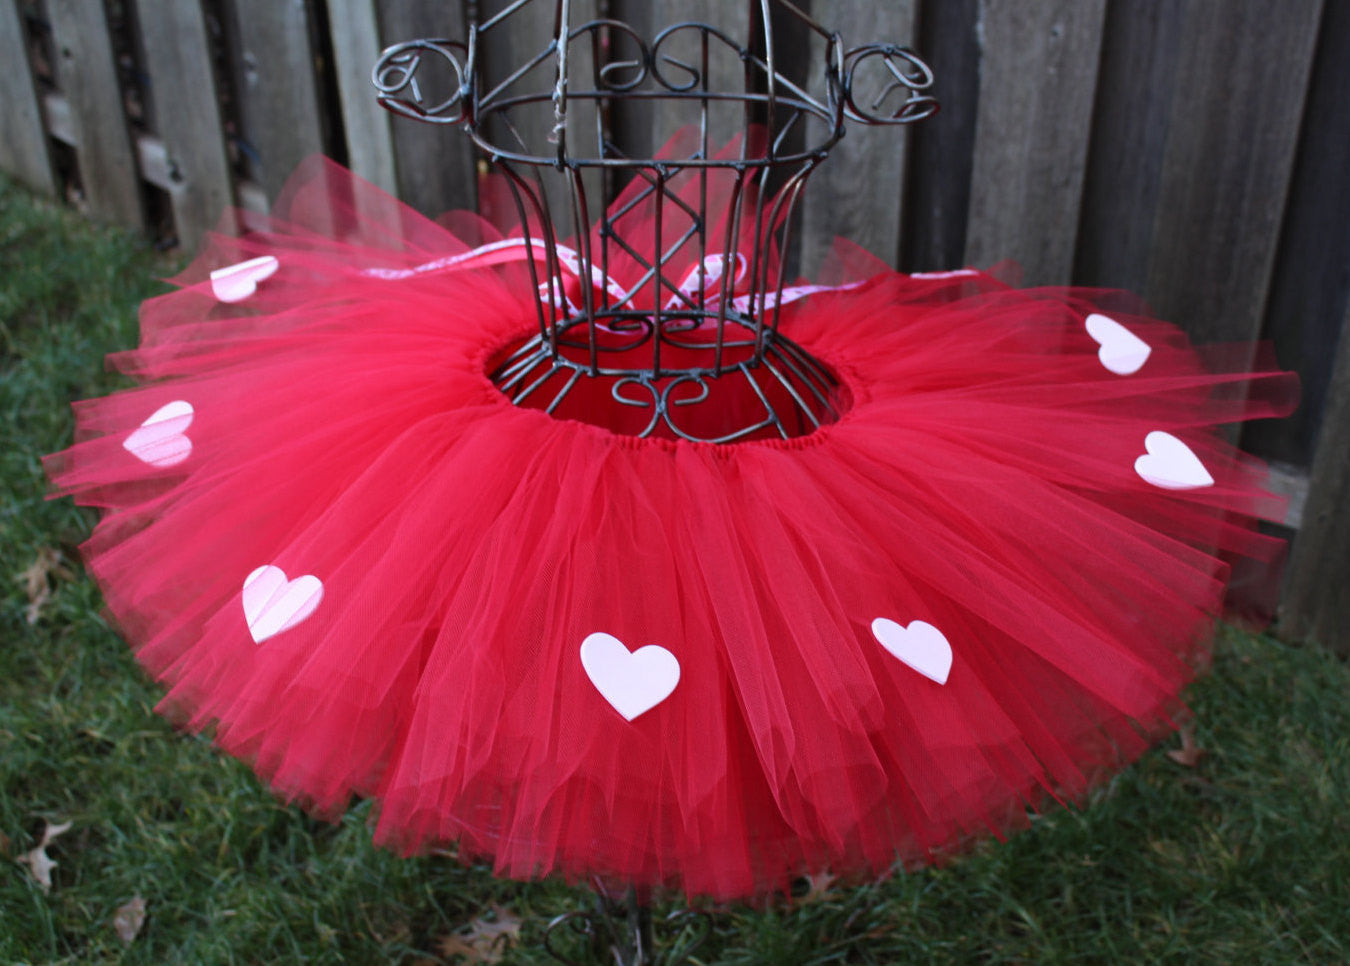 1542eacf8141b Simple Love Tutu, Red Valentine's Day Tutu, Valentine's Day Tutu,  Valetine's Tutu,